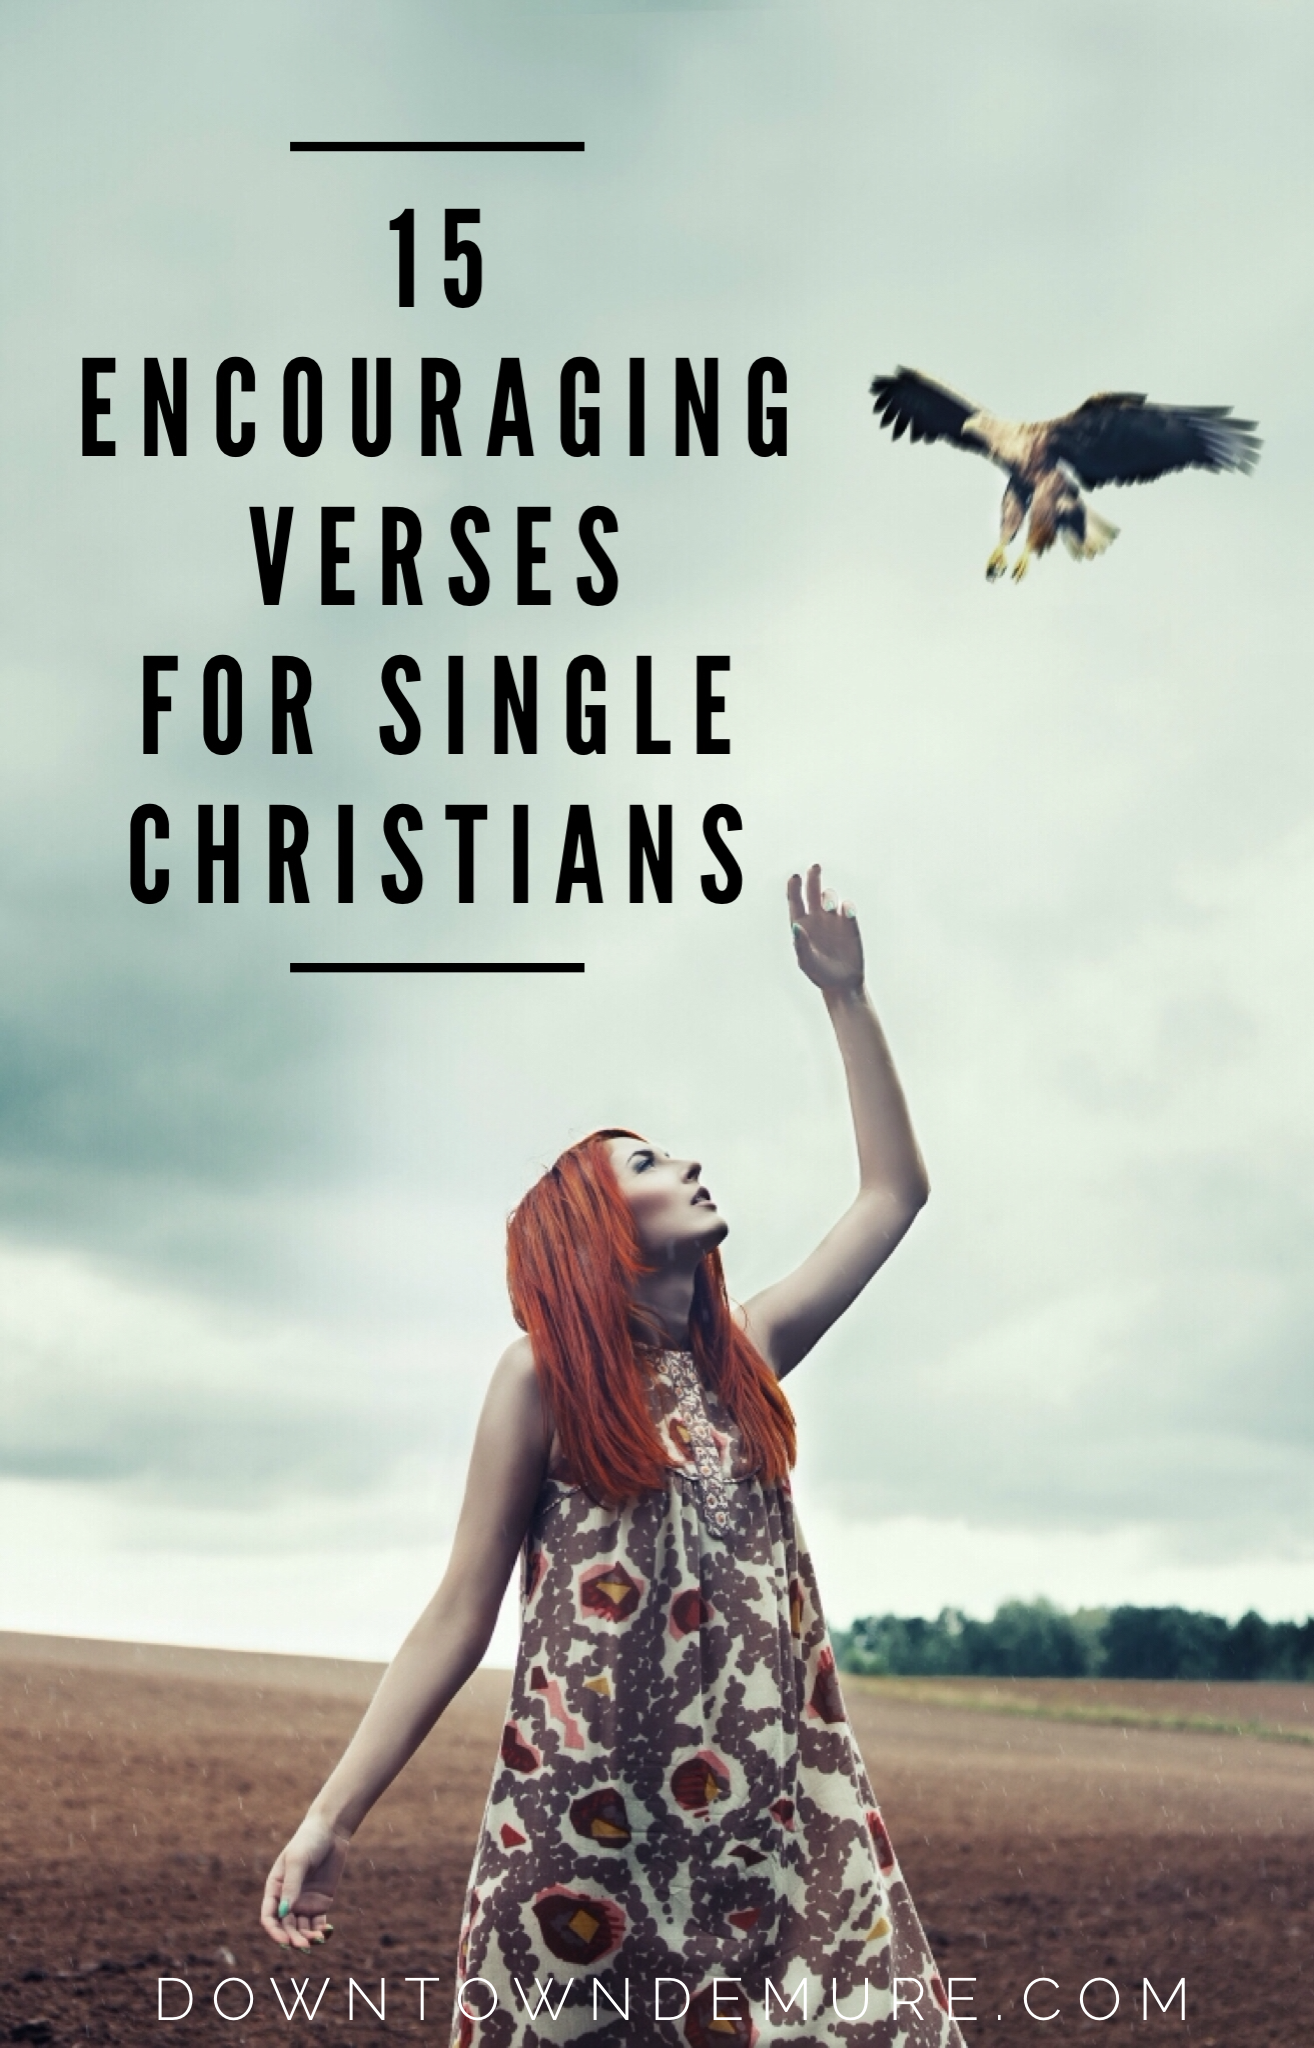 """many farms single christian girls On the one hand, there are unmarried / single christian women on the other hand, the bible advises the young single women to marry, """"now to the unmarried and the widows i say: it is good for them to stay unmarried, as i do."""